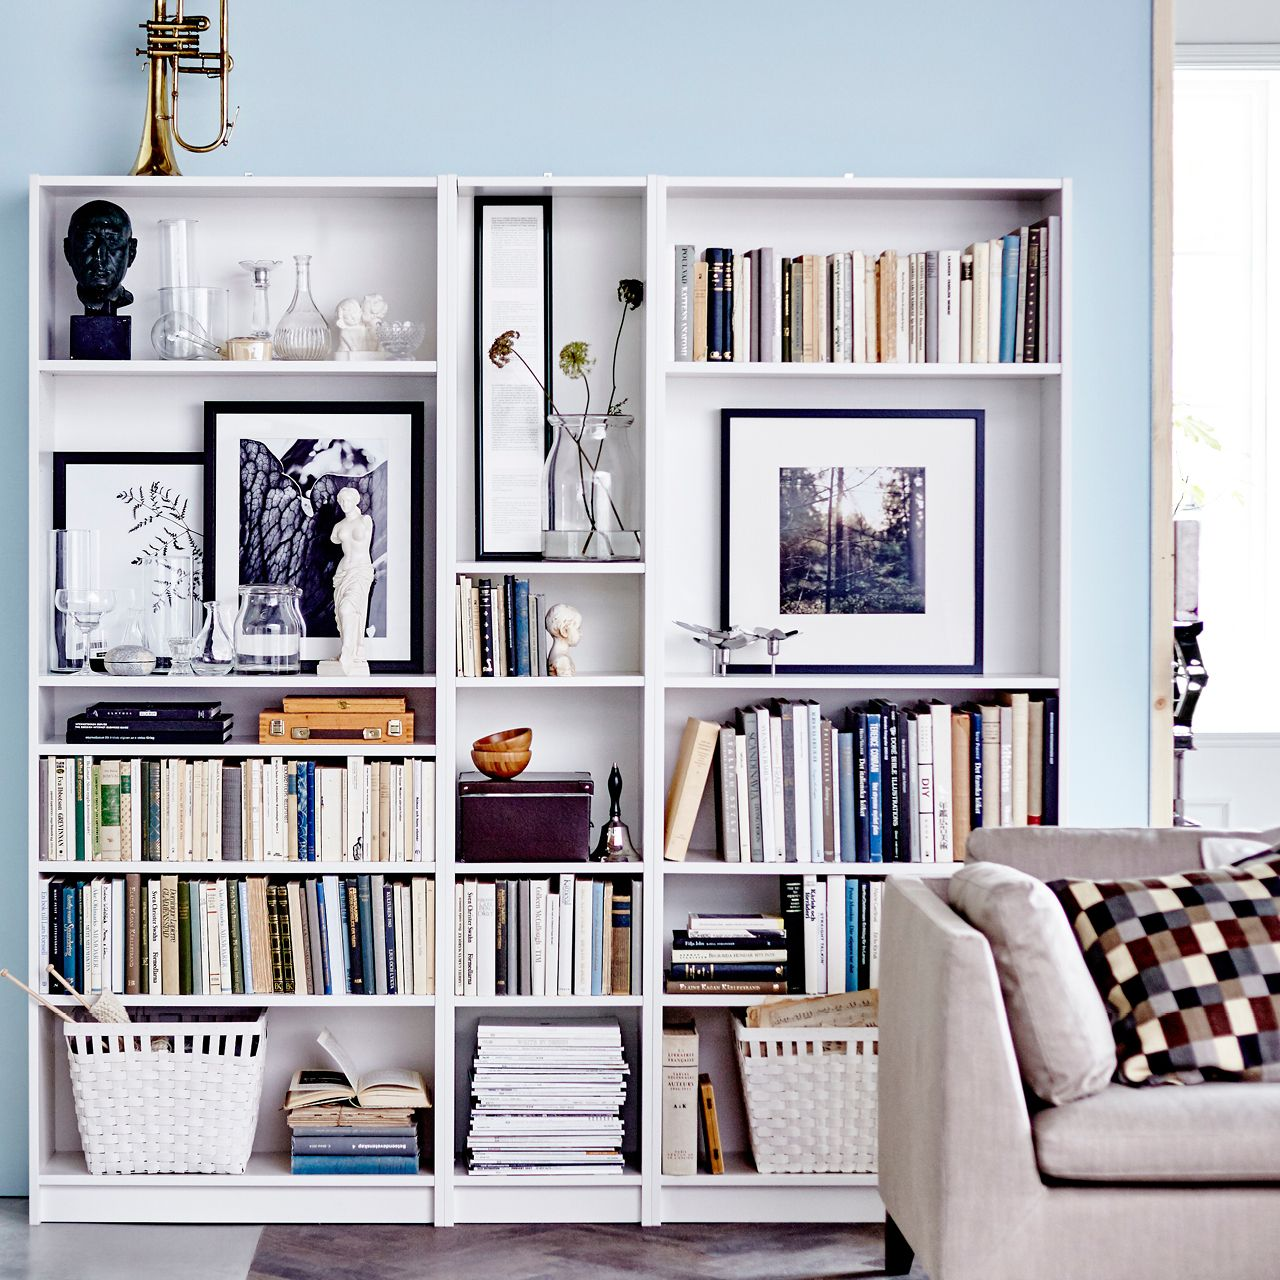 Merveilleux IKEA Billy Bookcase: Leave An Extra Wide Shelf At Shoulder Height, So You  Have Space For A Mirror And To Display Some Treasured Items.